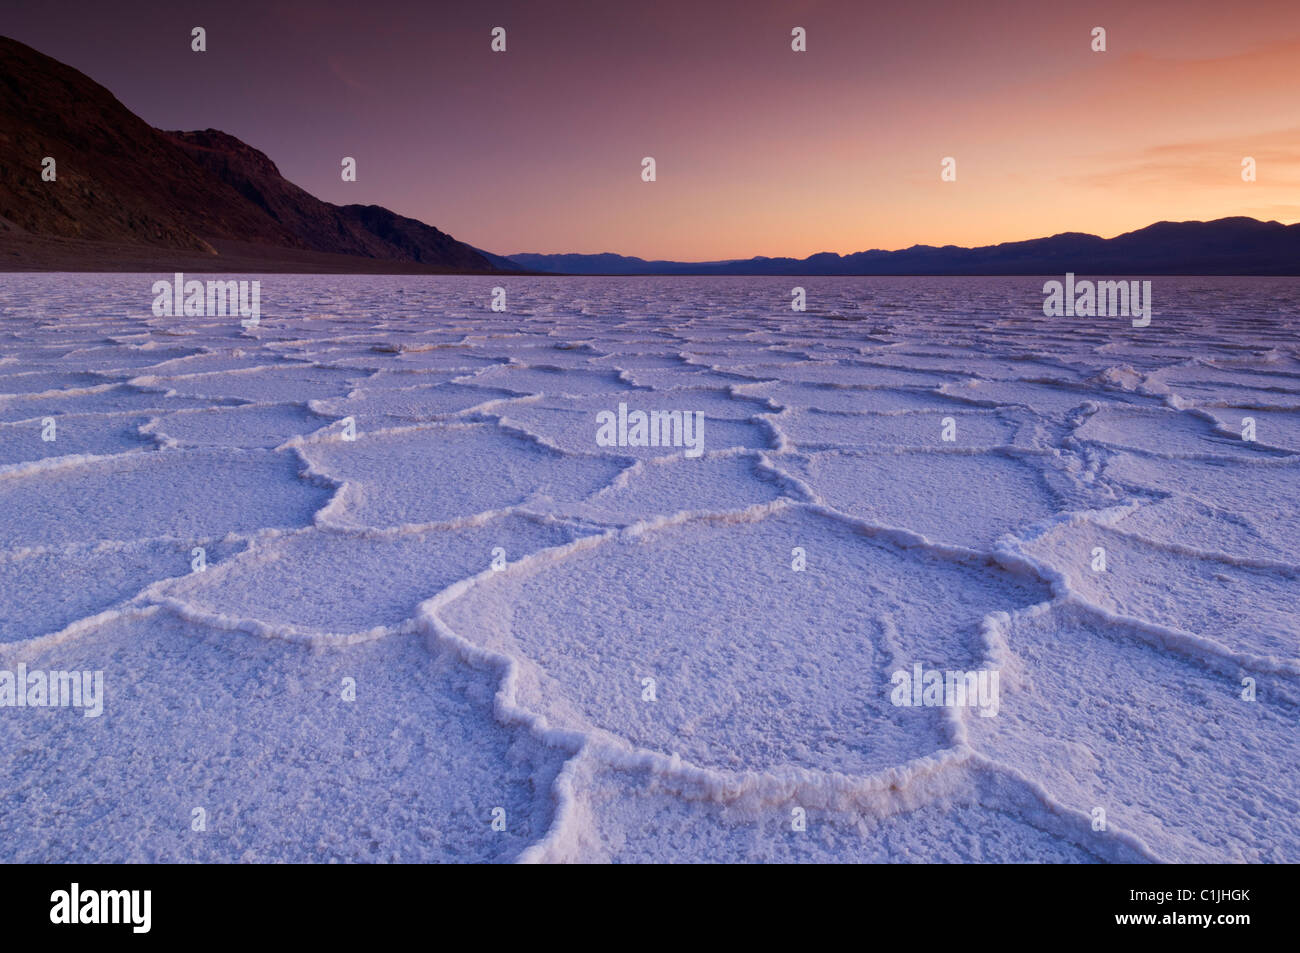 Salzpfanne Polygone bei Sonnenuntergang Badwater Basin Death Valley Nationalpark, Kalifornien, USA Stockbild